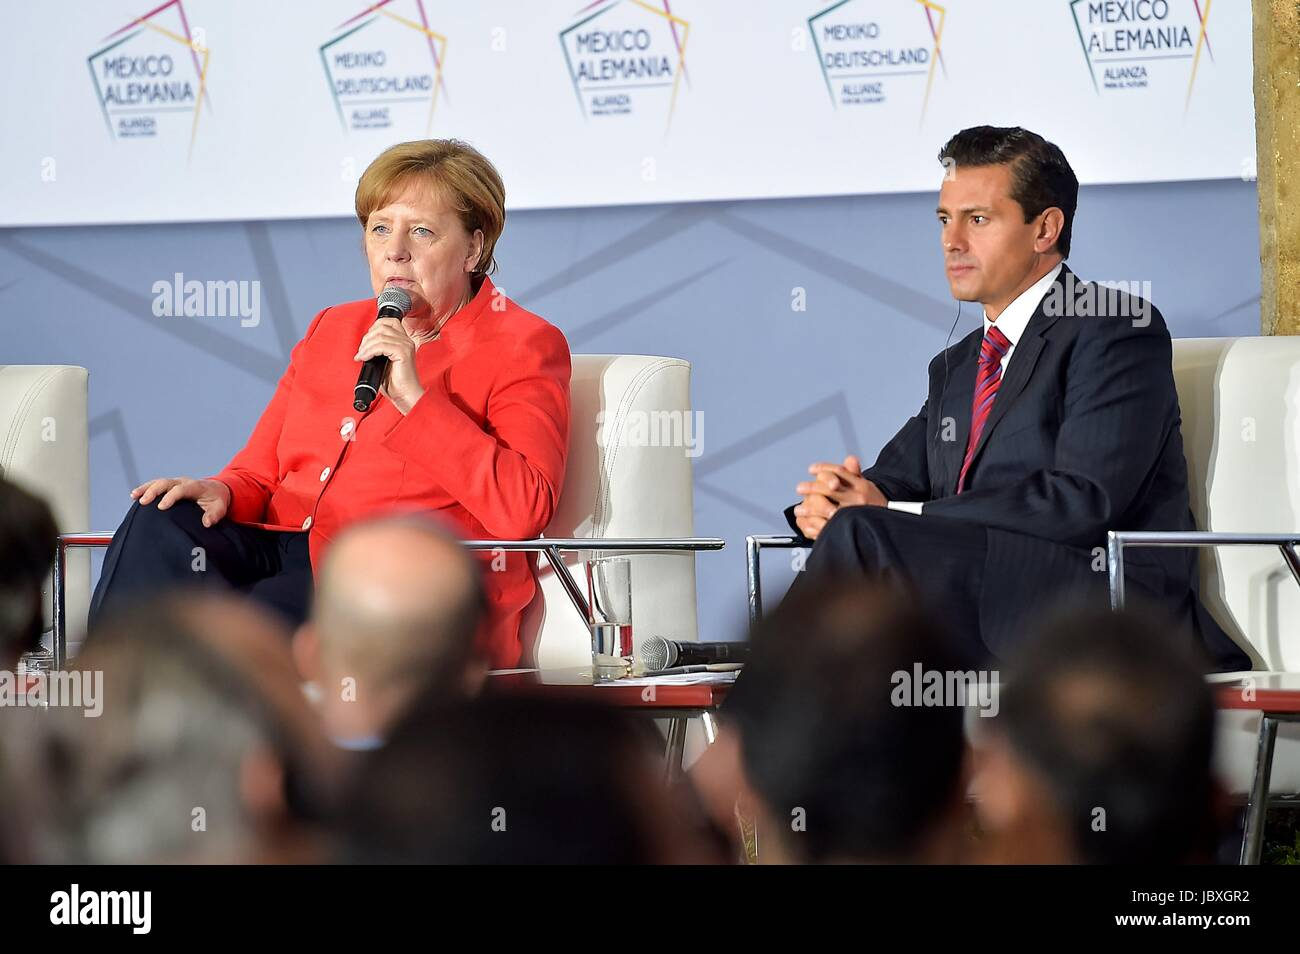 German Chancellor Angela Merkel answers a questions during a meeting with Mexican business leaders as Mexican President - Stock Image